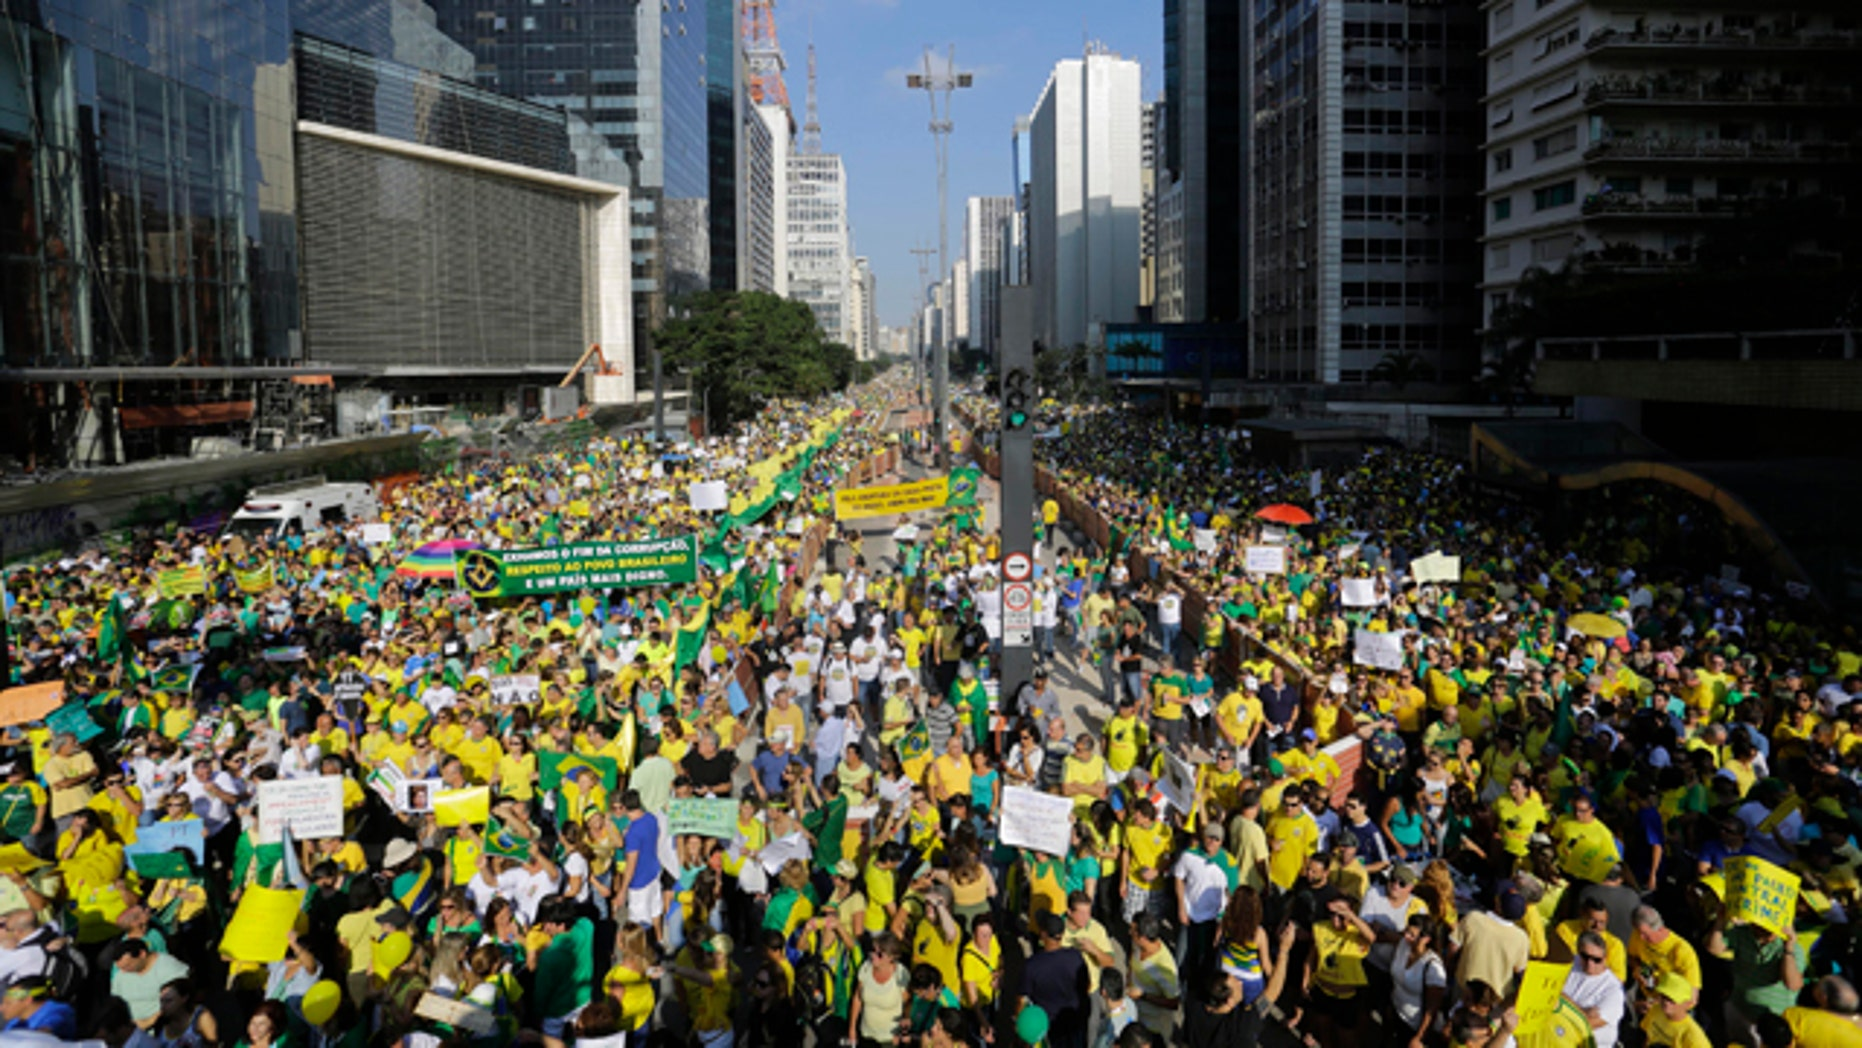 April 12, 2015: Demonstrators take part in an anti-government protest in Sao Paulo, Brazil. Anti-government demonstrators streamed into the streets throughout Brazil to demand the impeachment of President Dilma Rousseff. (AP Photo/Nelson Antoine)